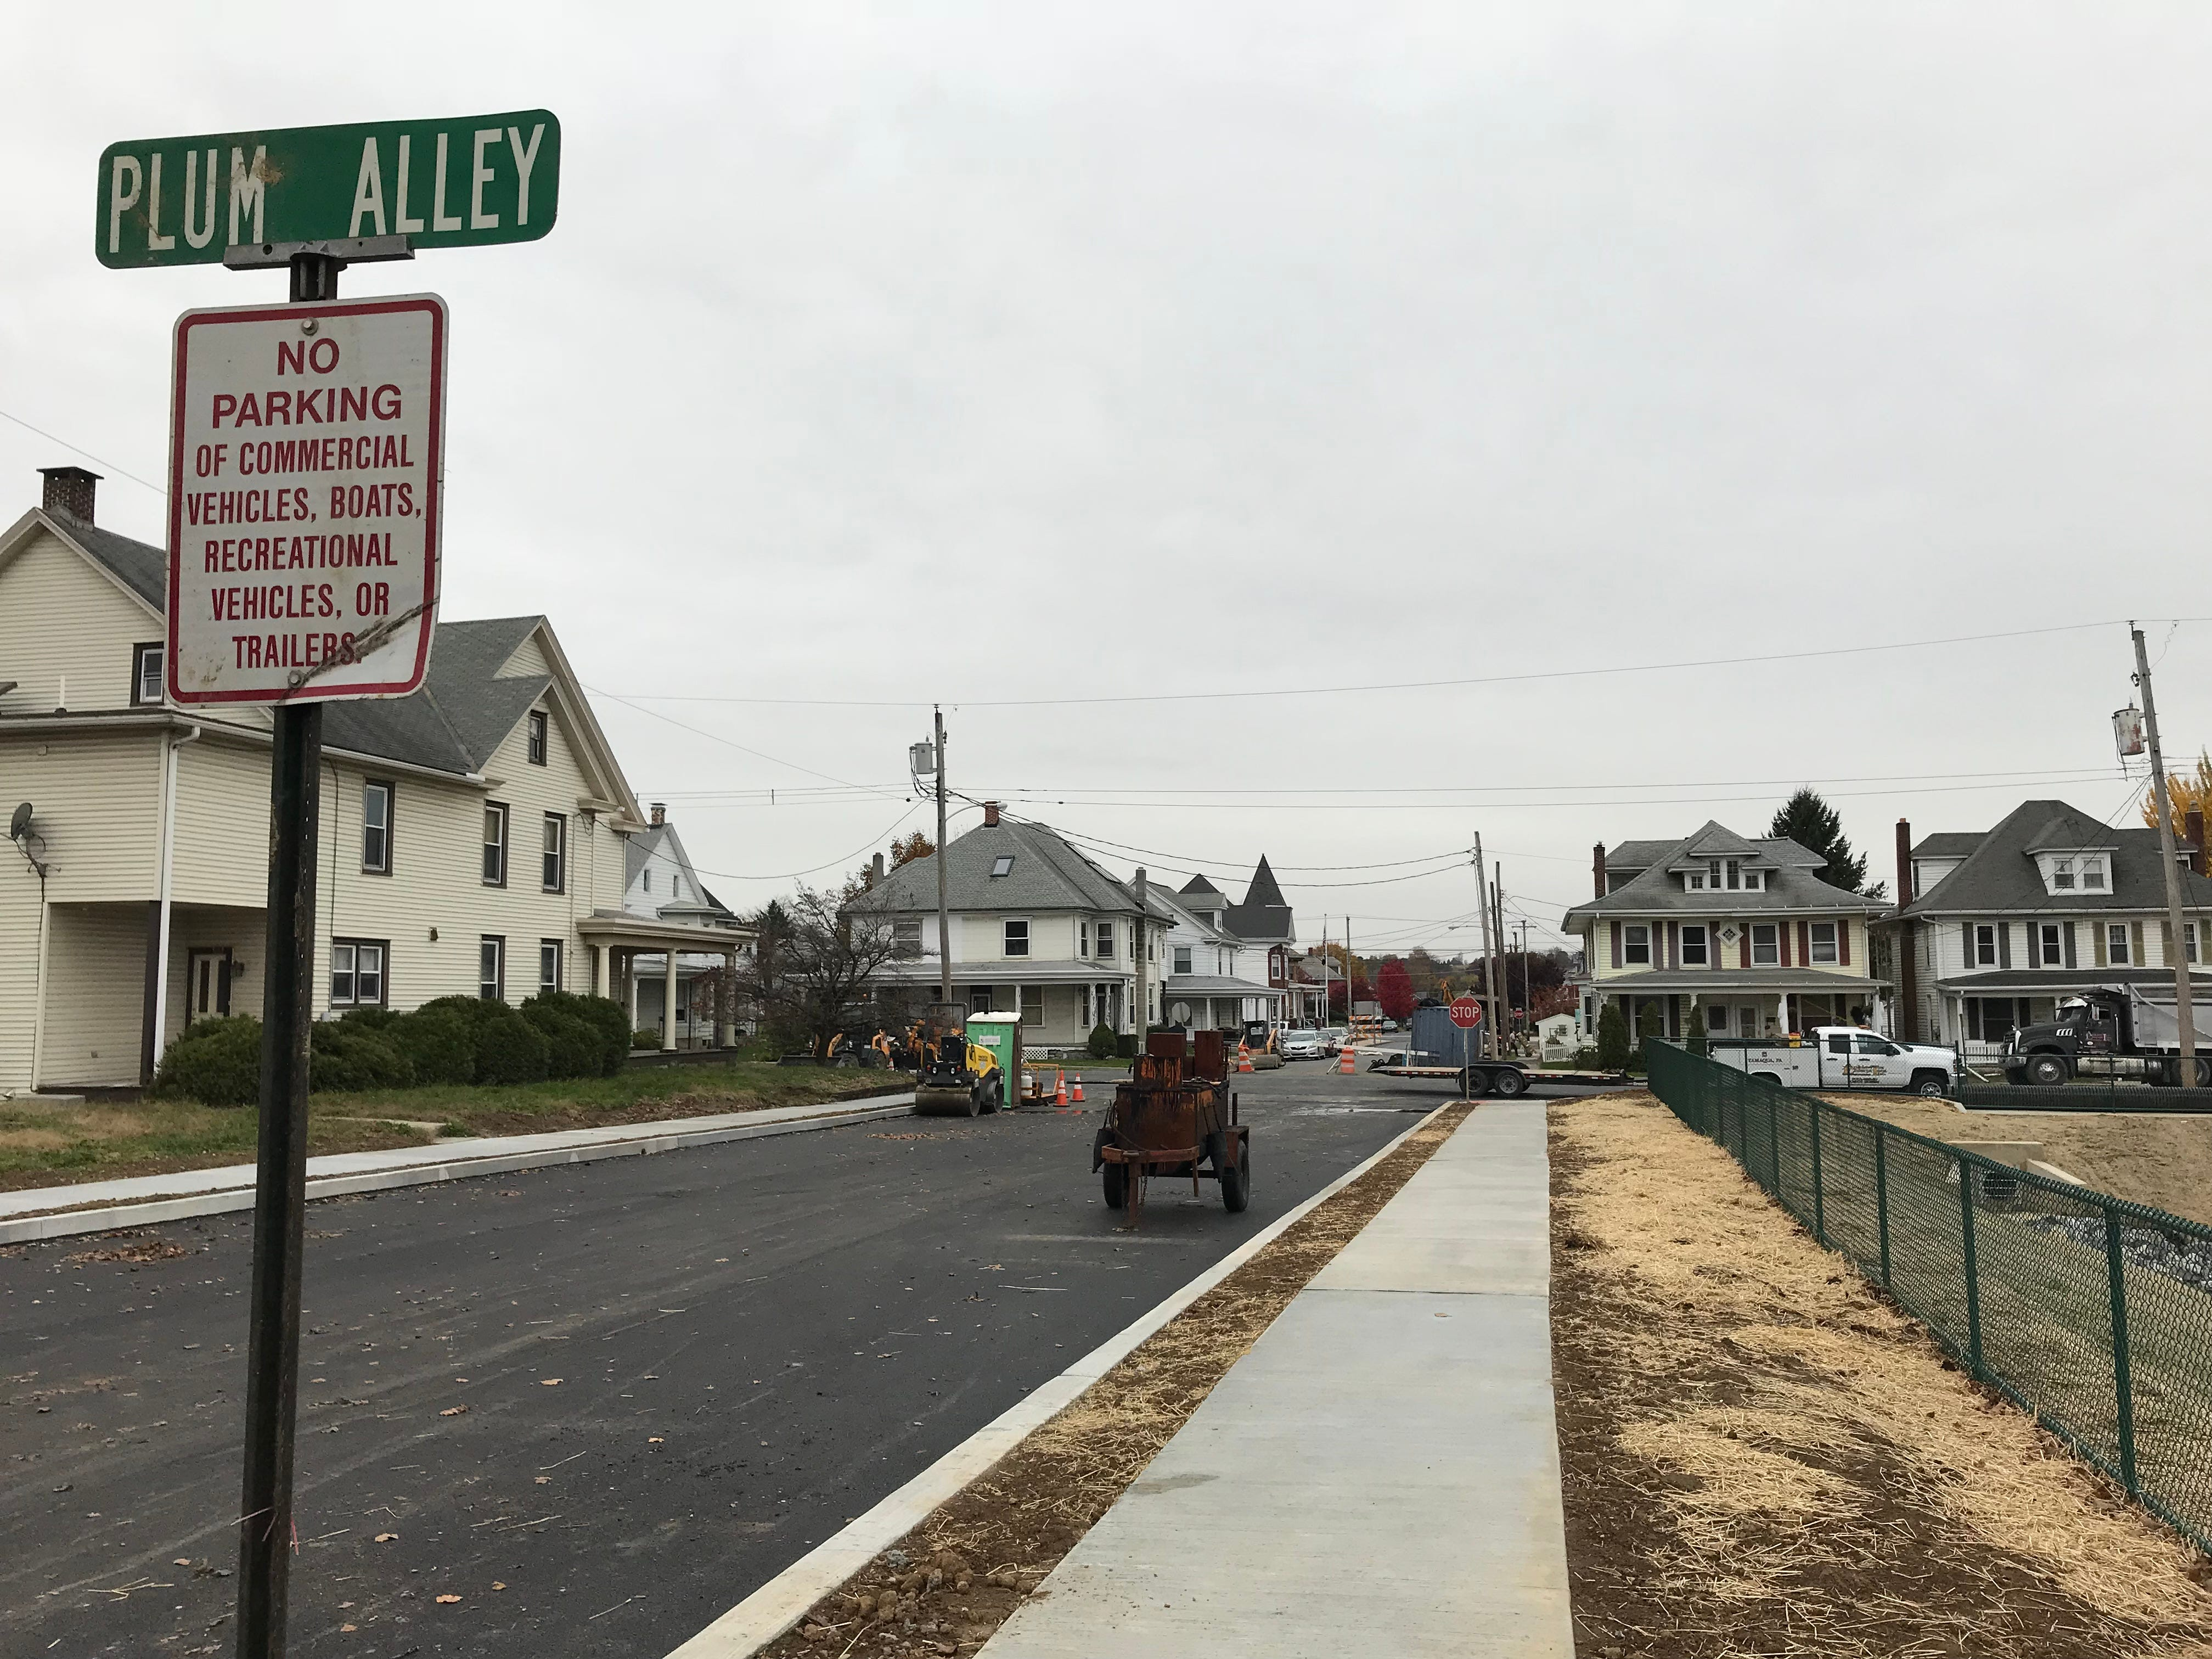 The Plum Alley side of the completed stormwater management system constructed in the 300 block of East Cherry Street, Palmyra, Nov. 9, 2018. Cherry Street was re-opened in the area after a four-year closure due to sinkhole damage.